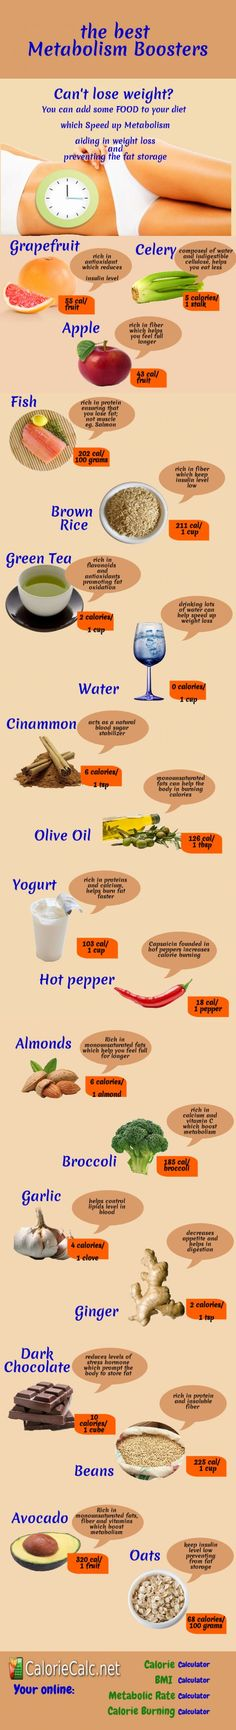 Some food can boost metabolism prevent the fat storage and help you lose or maintain weight.: Diet Metabolism Boosters Weight Loss Increase Metabolism Metabolism Boosting Foods Weightloss Healthy Food Weights Loss Metabolism Infographics by Muna. Best Metabolism Booster, Foods That Increase Metabolism, Metabolism Boosting Foods, Speed Up Metabolism, Metabolism Supplements, Healthy Habits, Get Healthy, Healthy Tips, Healthy Choices